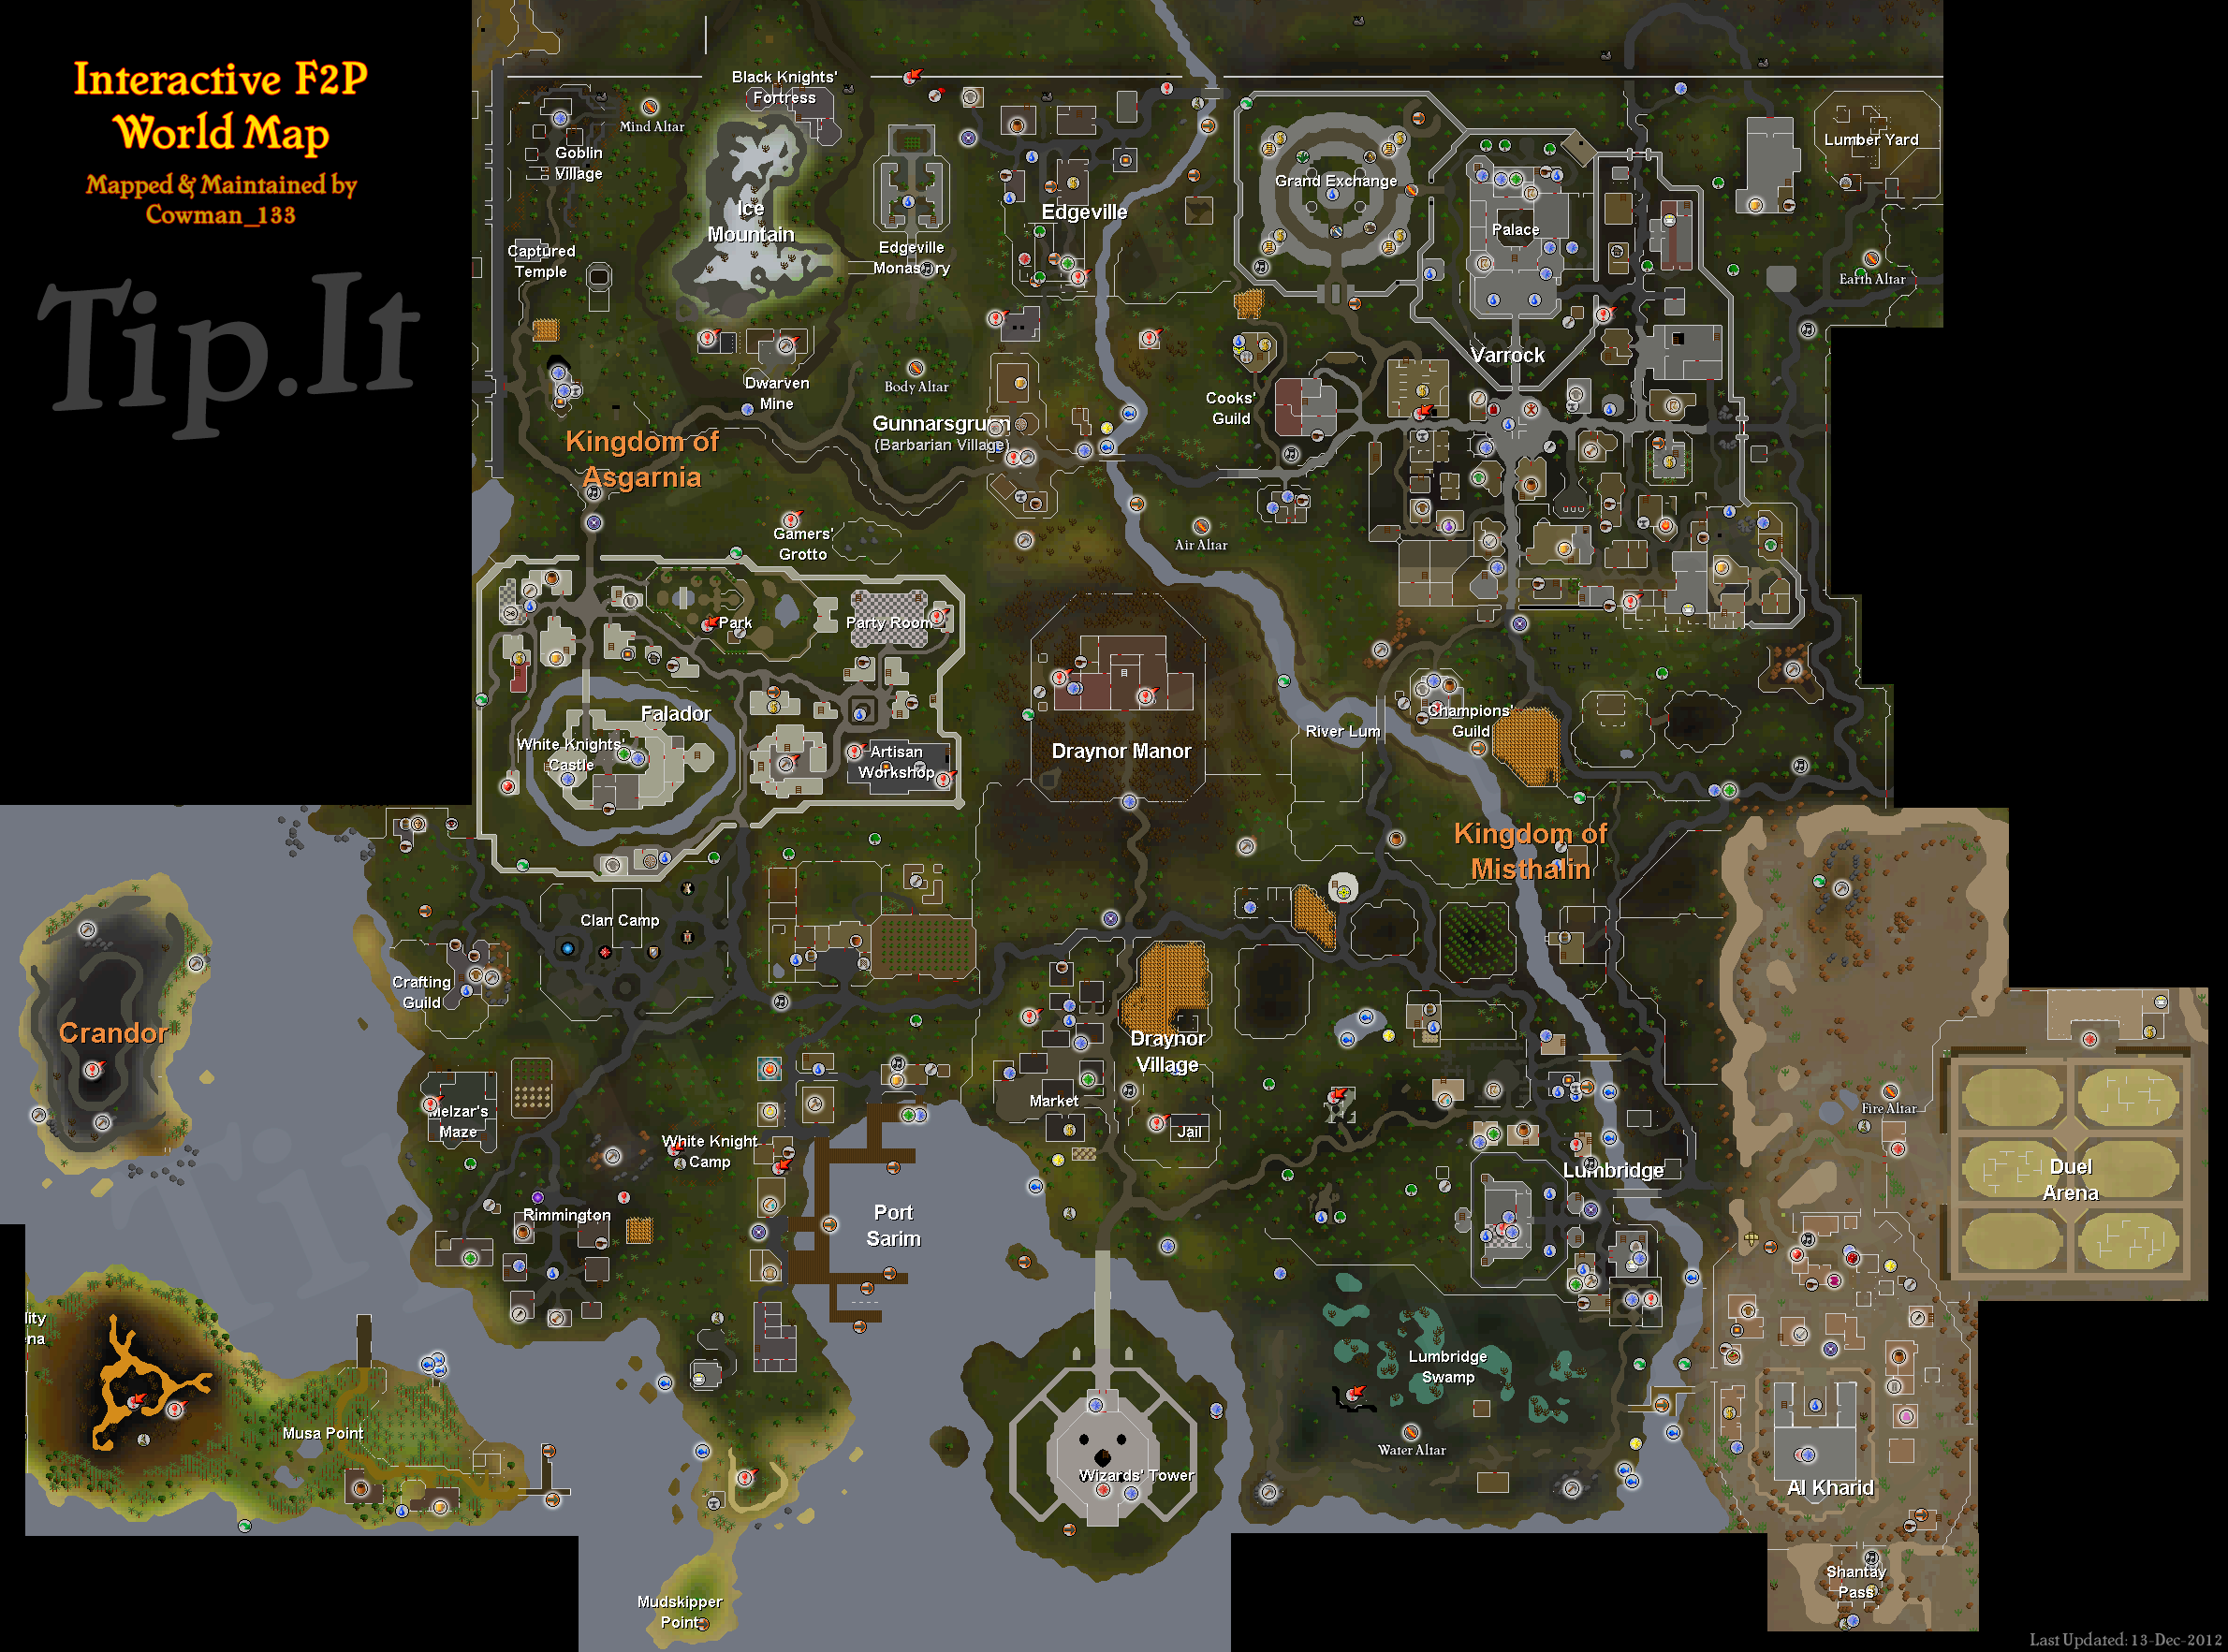 Tip.It RuneScape Help :: F2P World Map :: The Original RuneScape ...